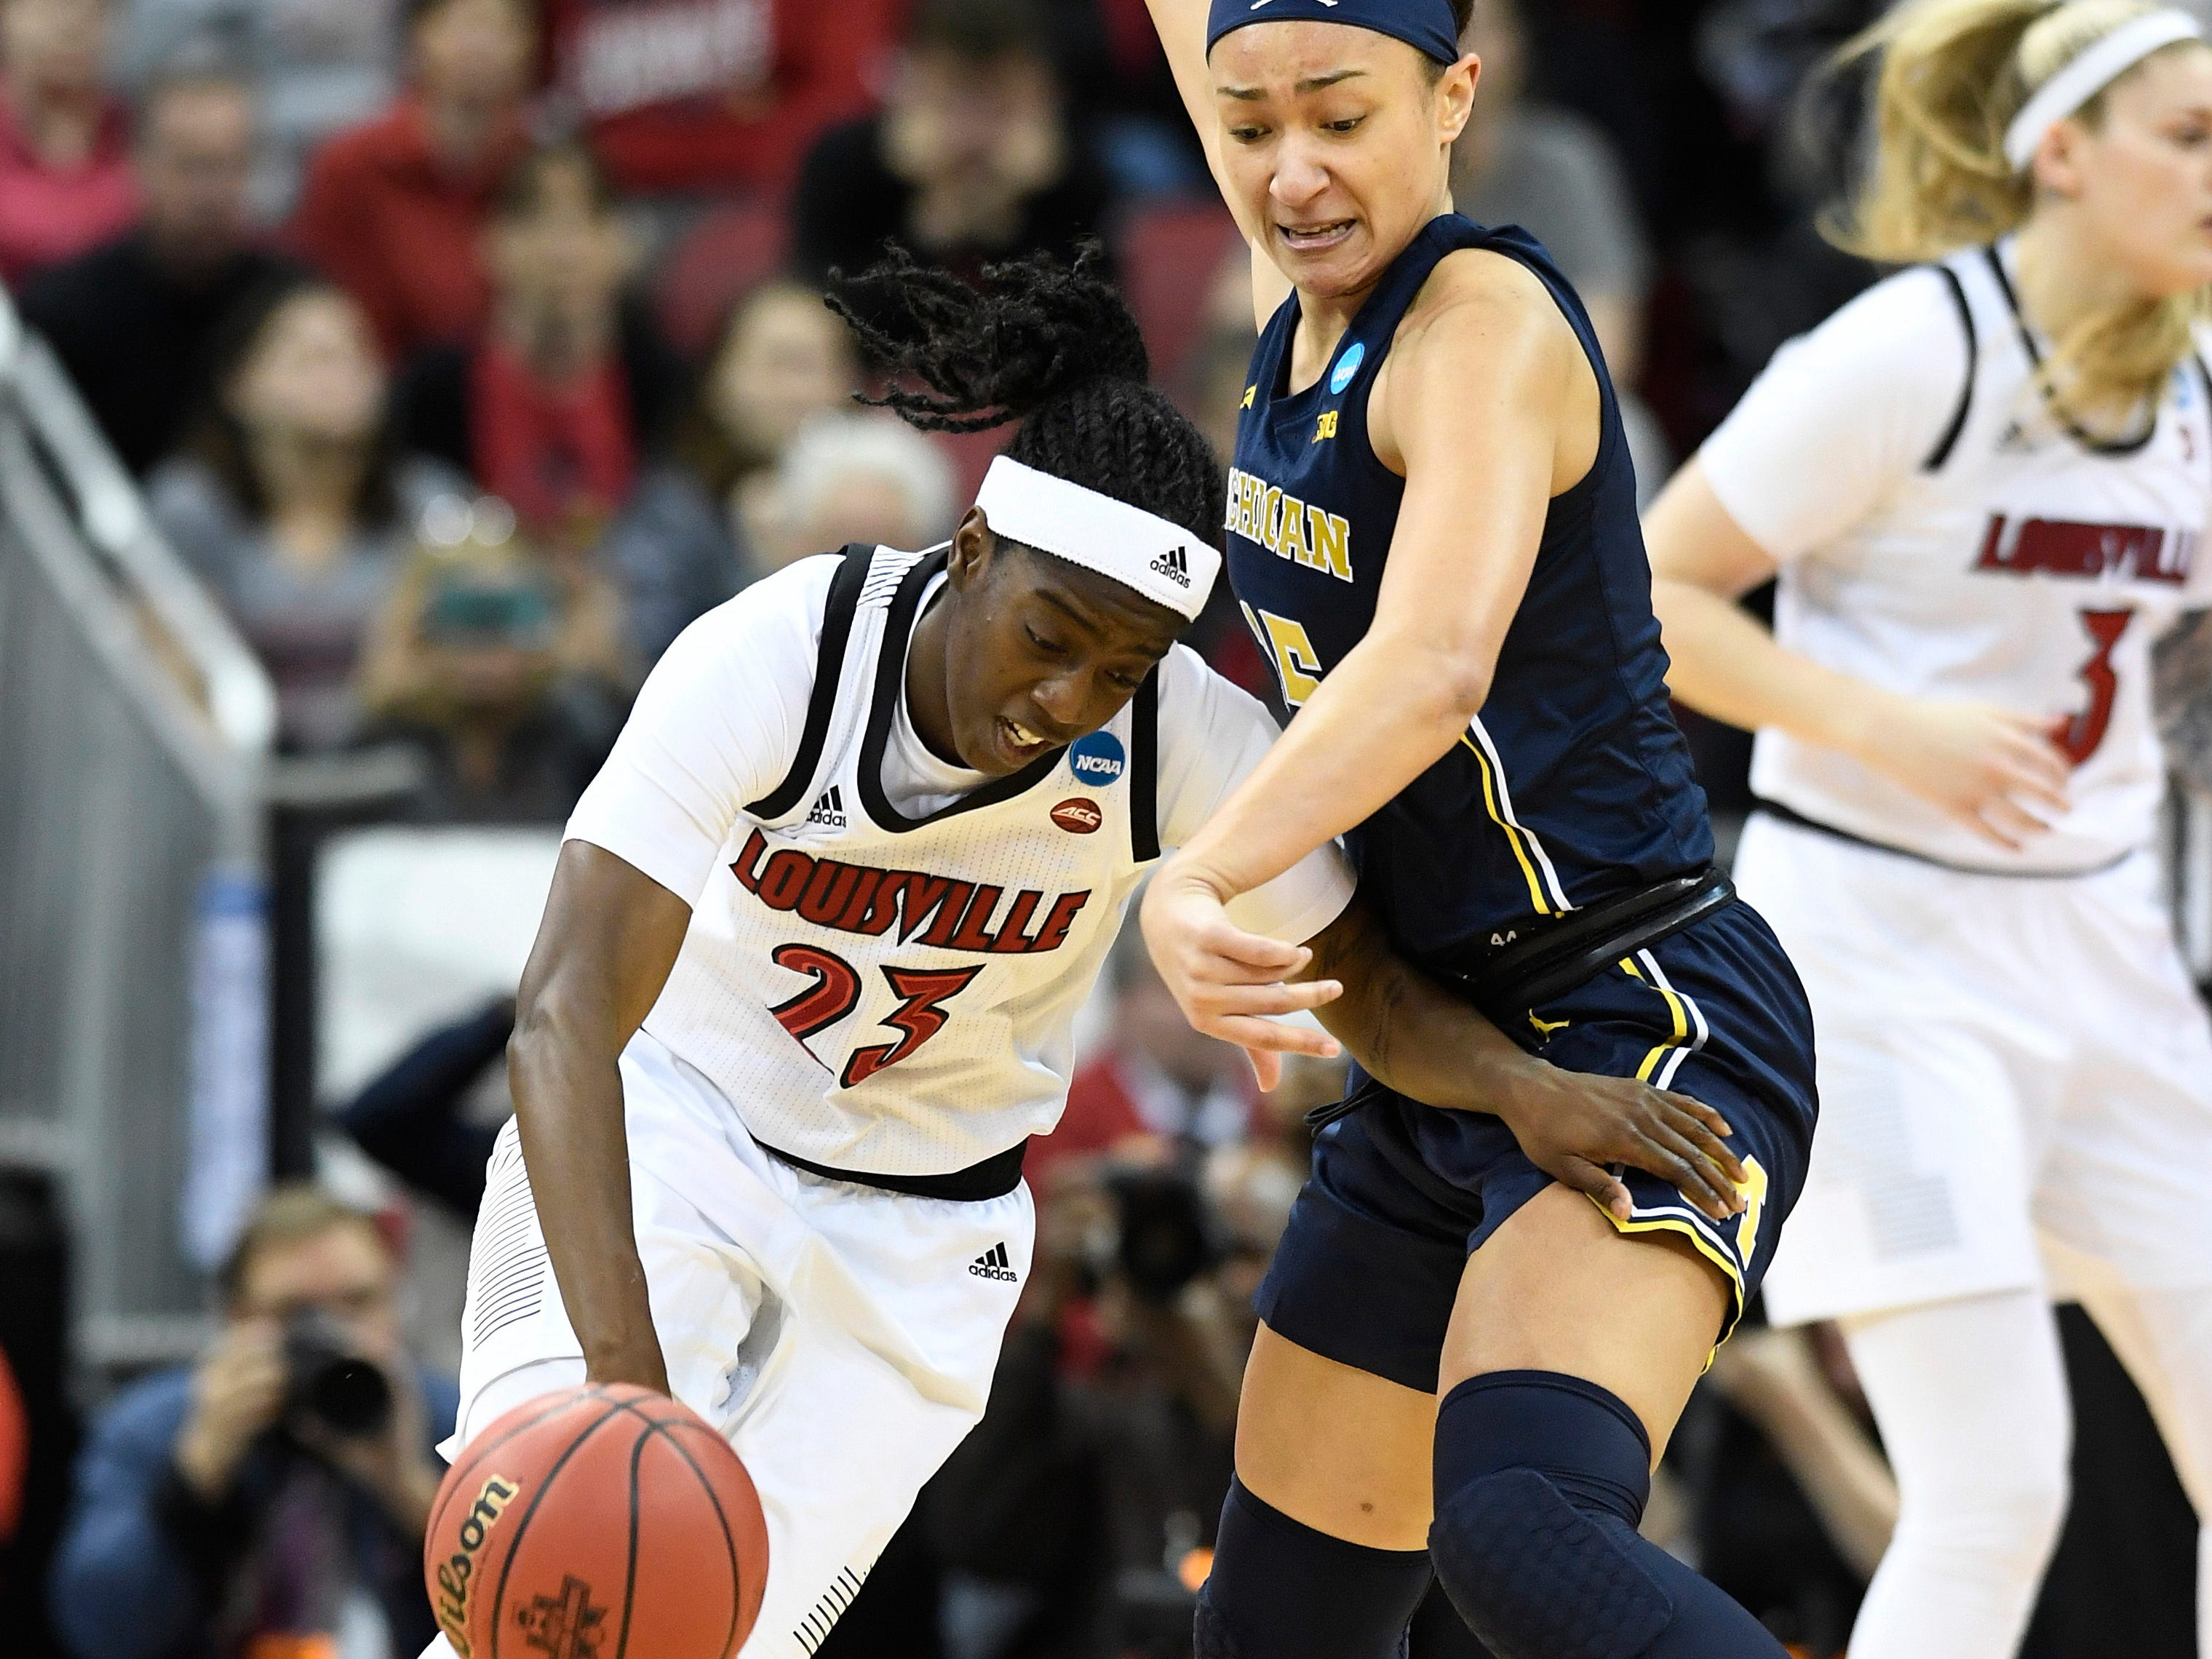 Louisville guard Jazmine Jones tries to get past the defense of Michigan forward Hailey Brown.